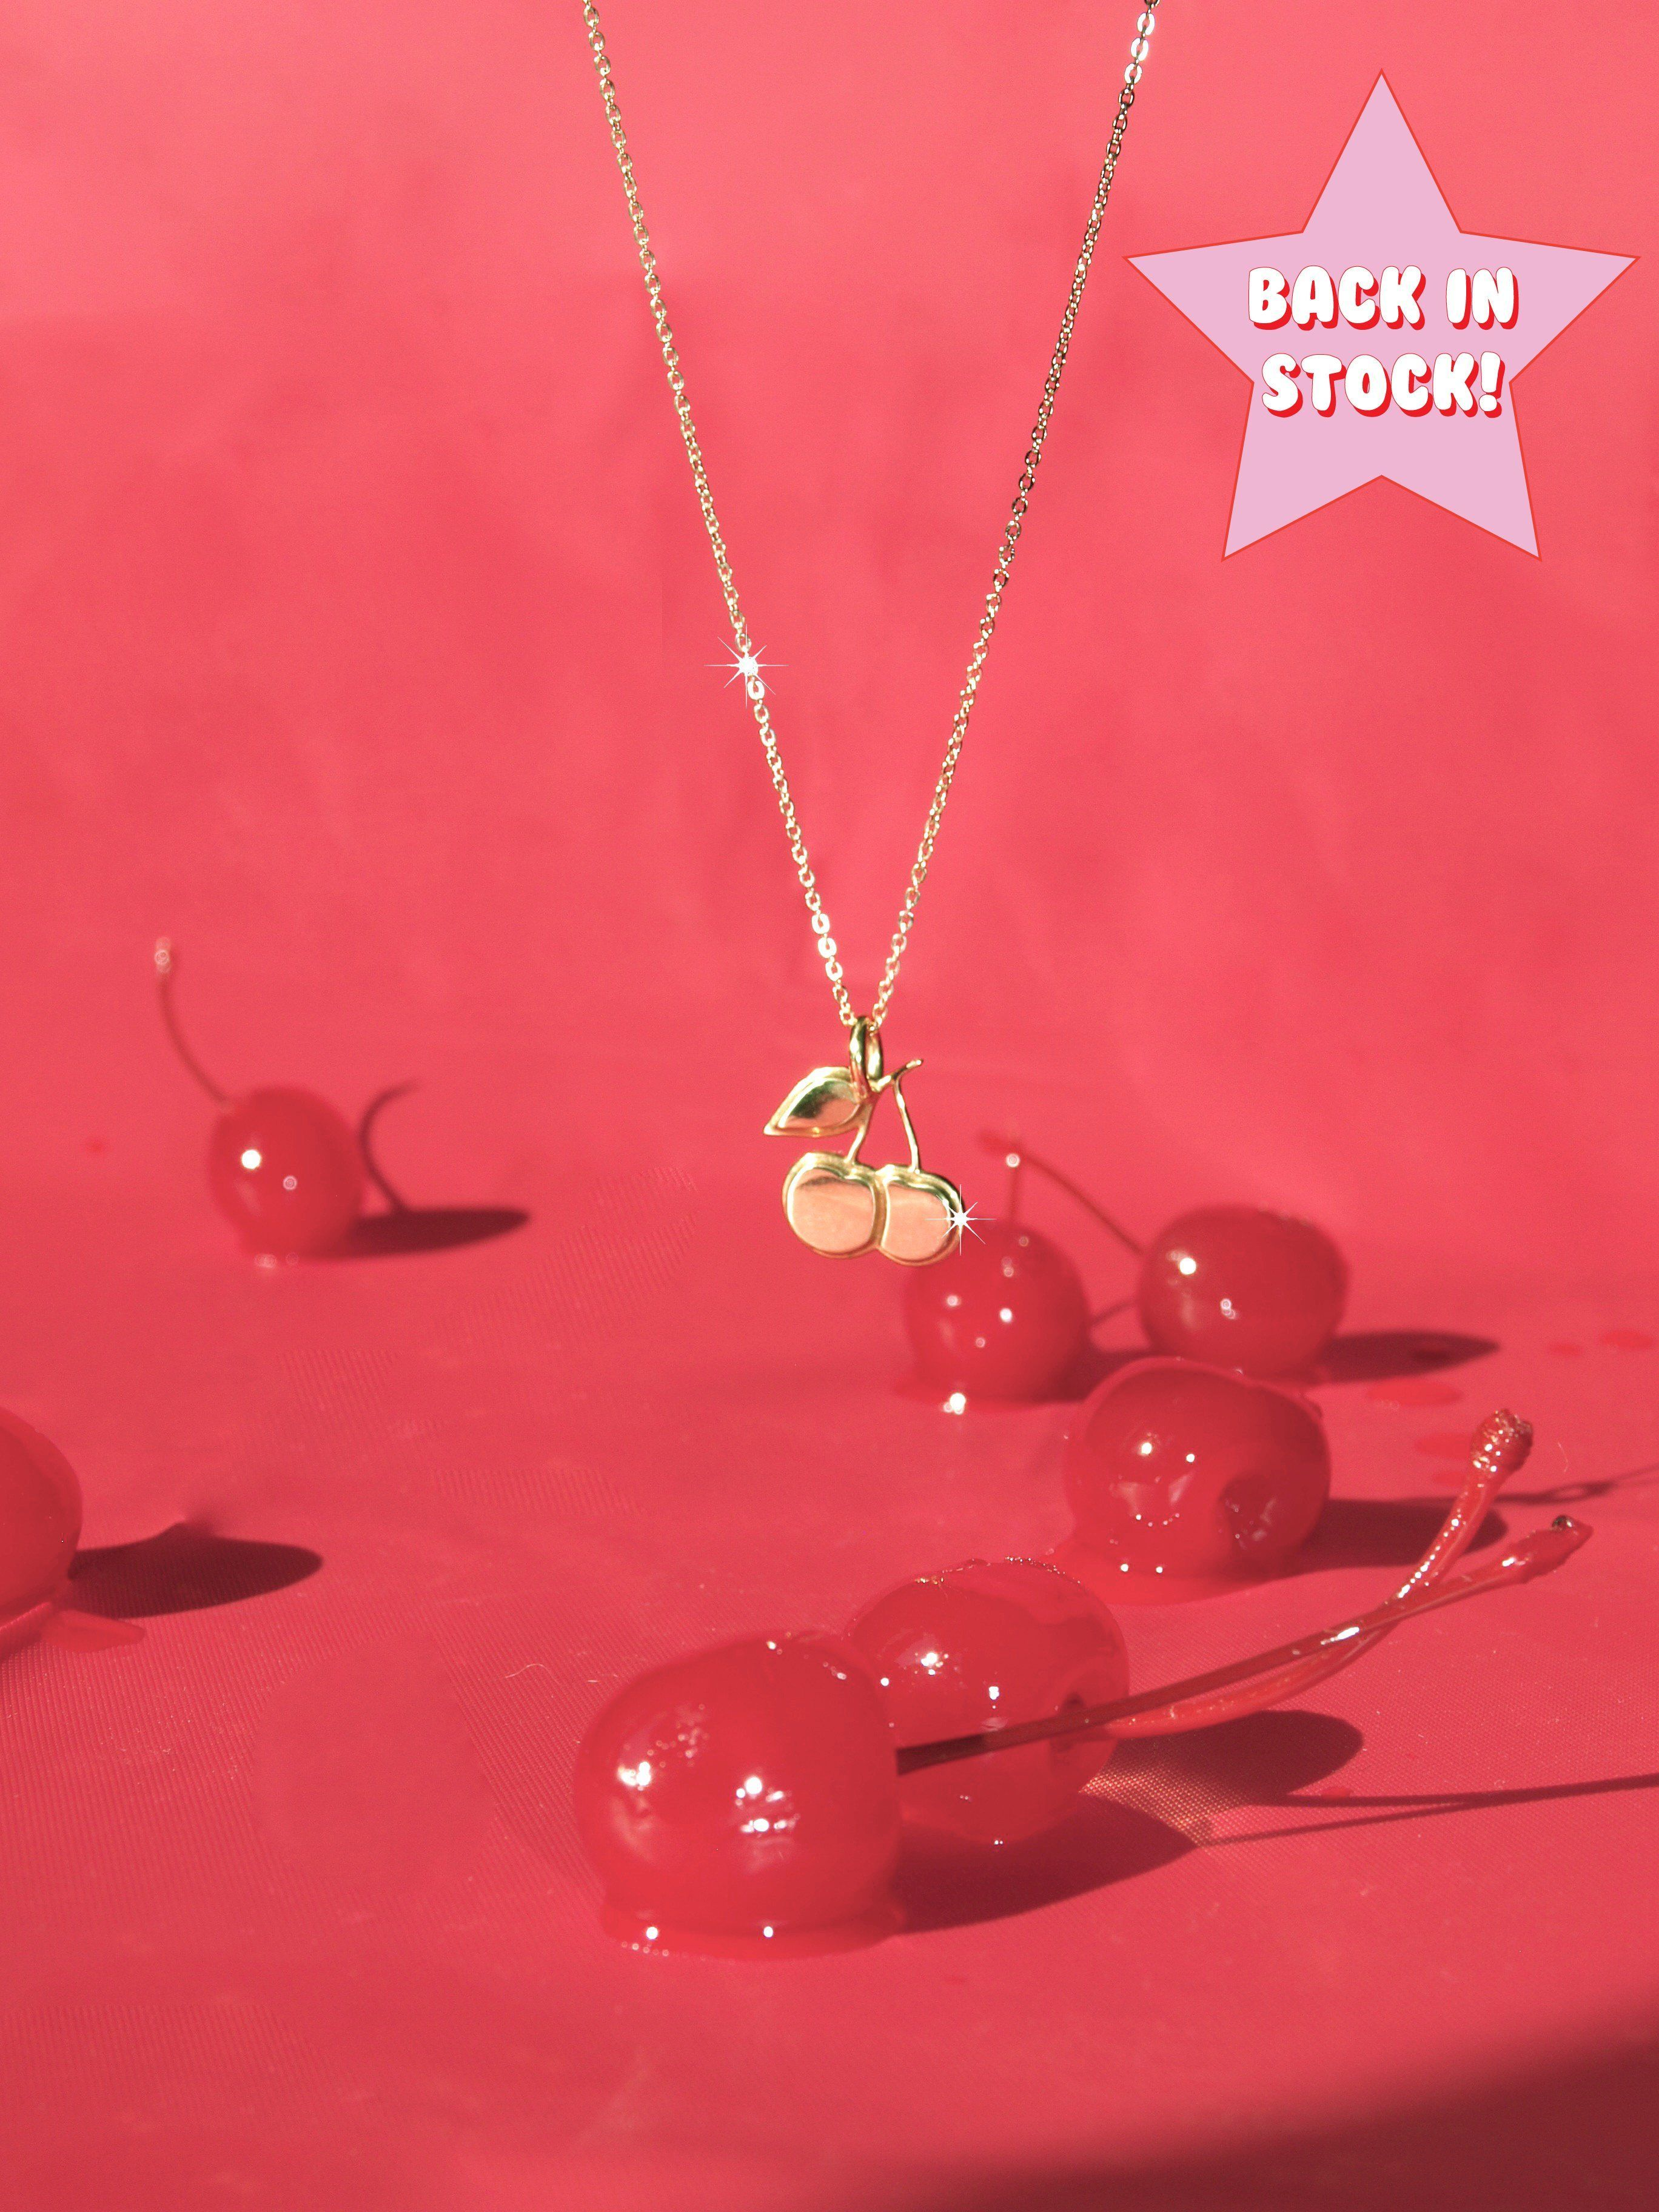 Cherries Necklace Cherry Necklace Aesthetic Vintage Red Aesthetic